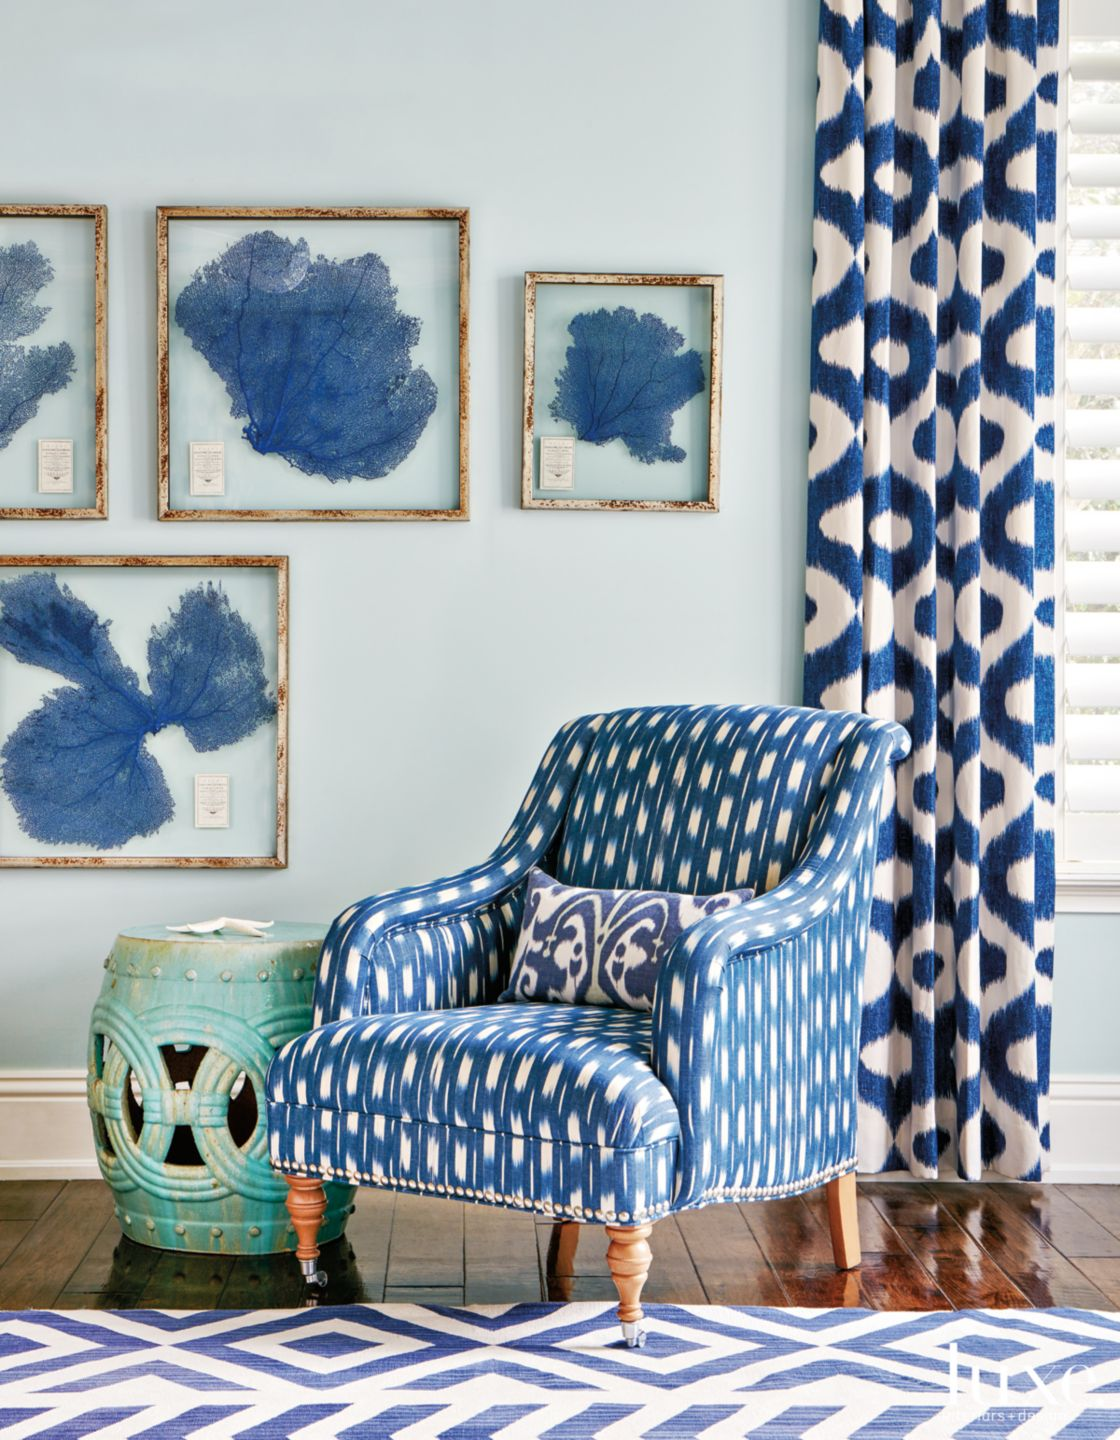 Mediterranean Blue Family Room Vignette with Garden Stool